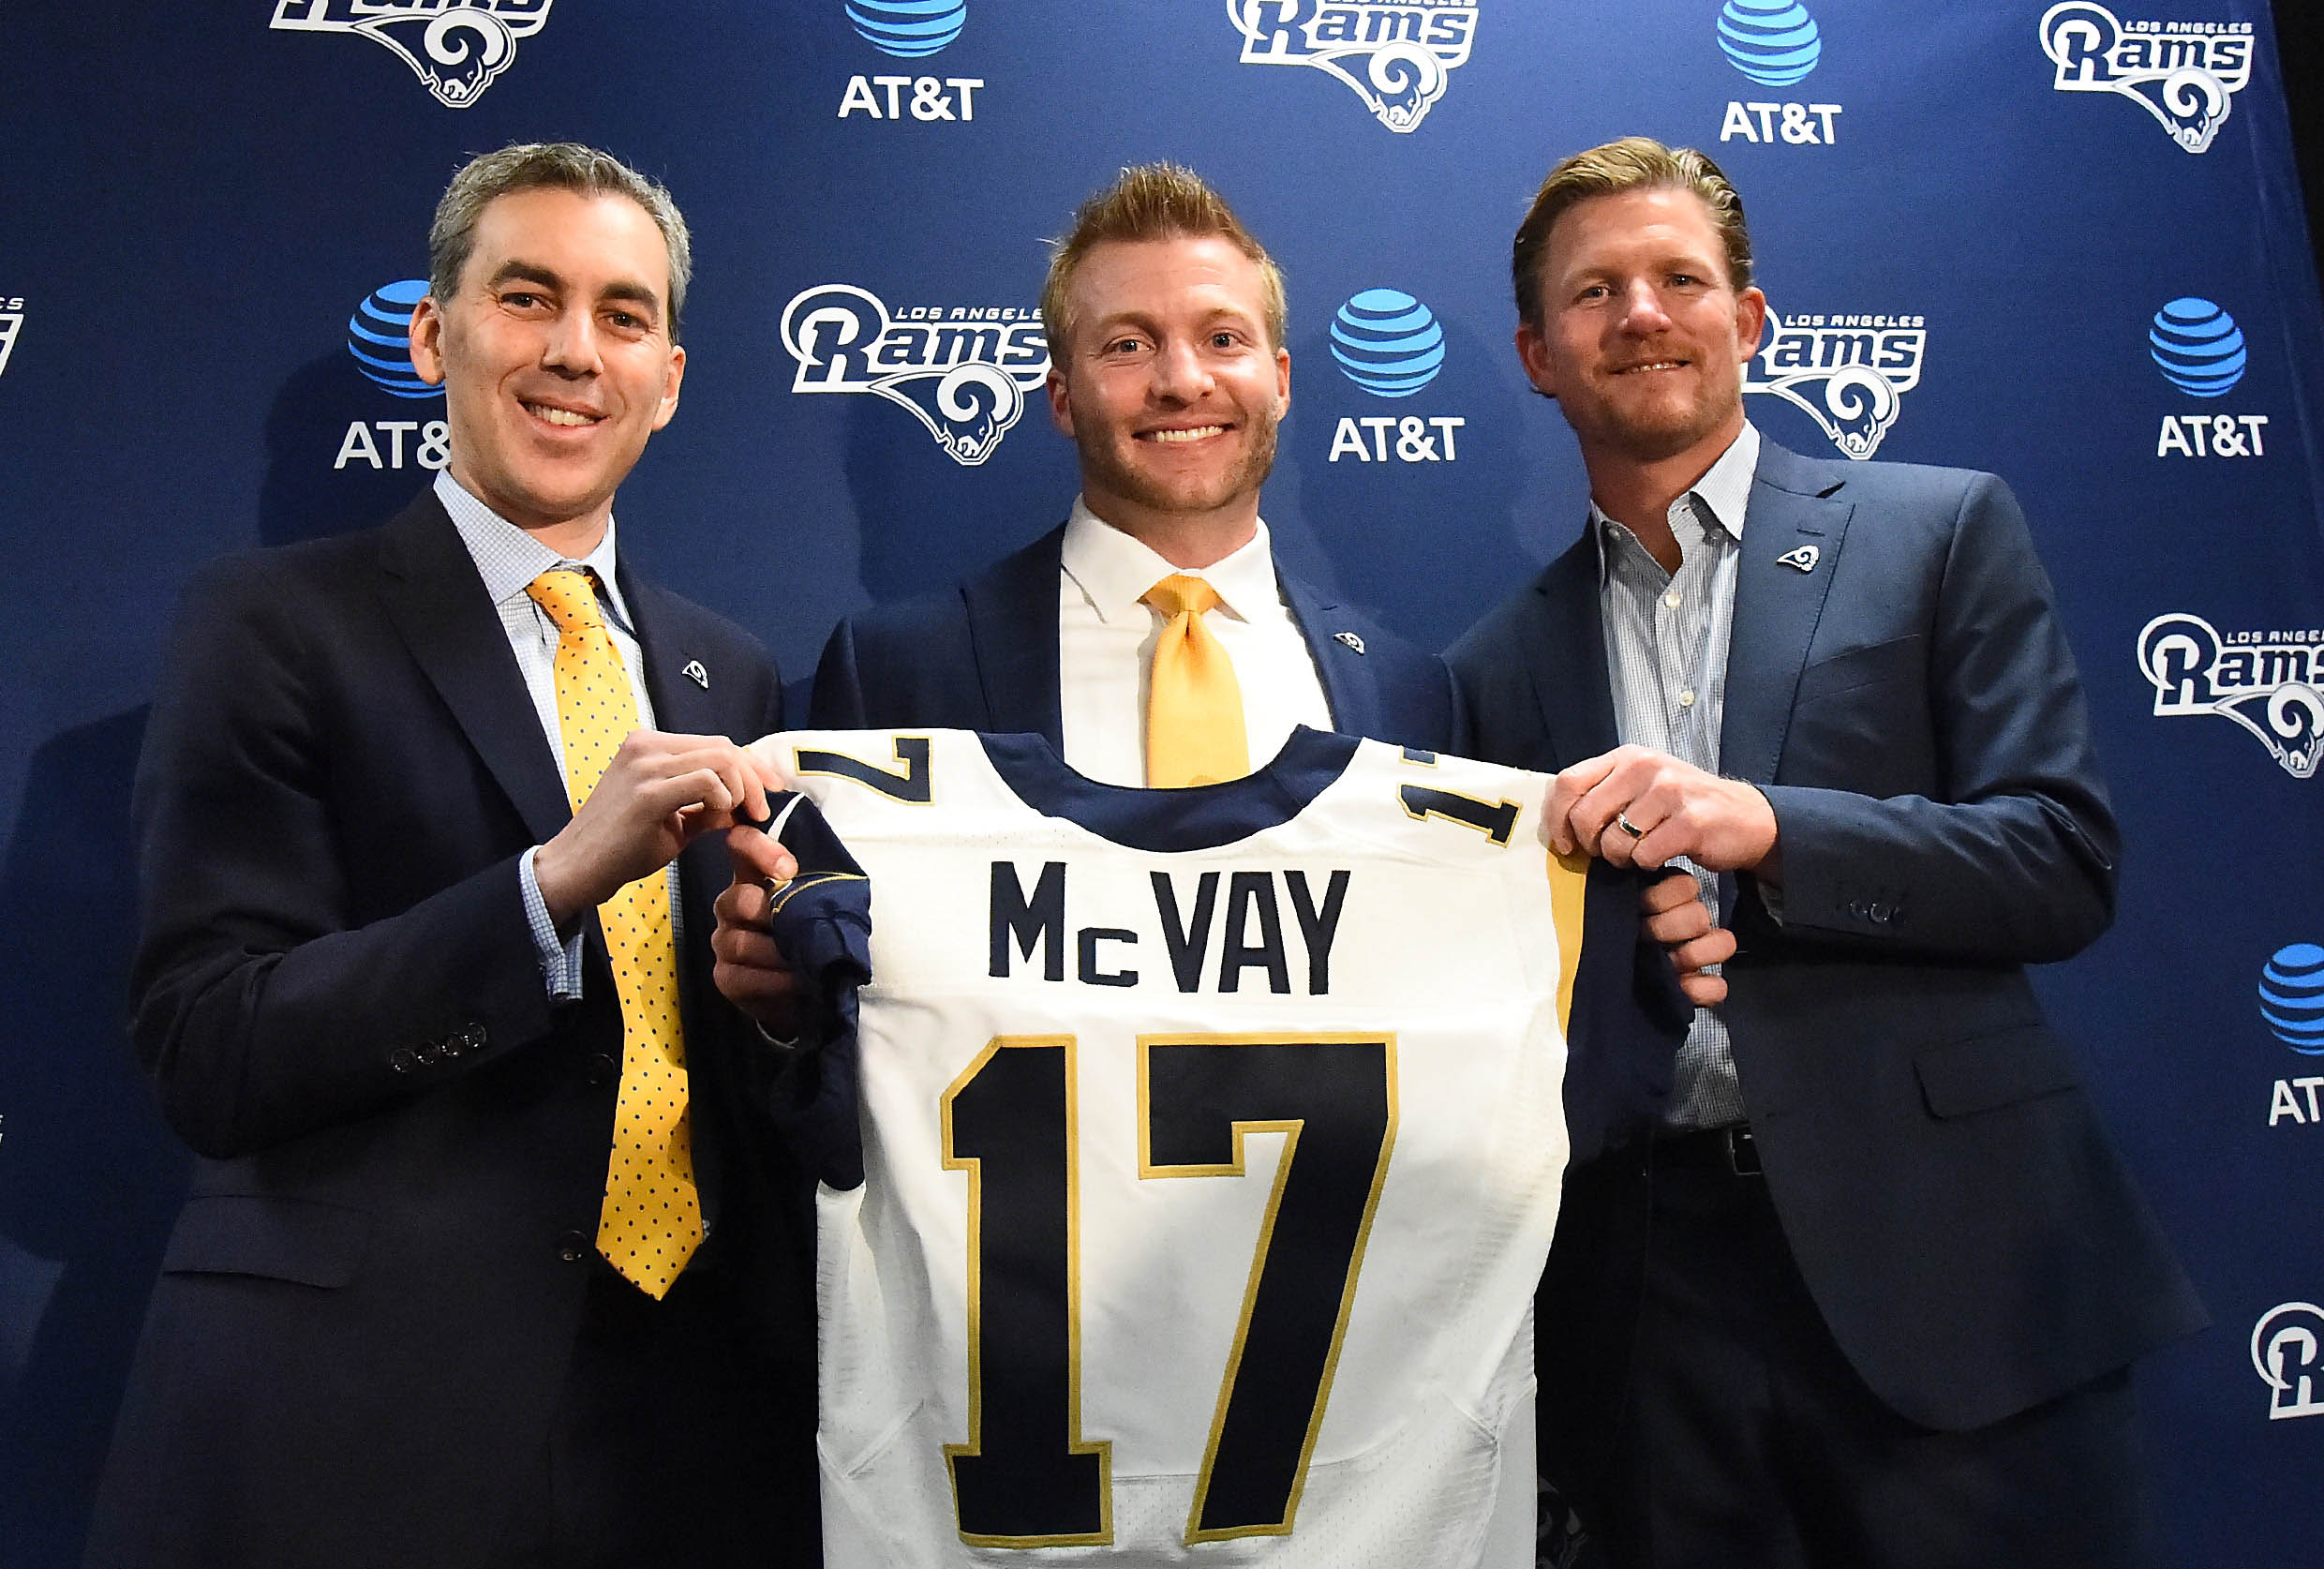 9807755-nfl-los-angeles-rams-sean-mcvay-press-conference